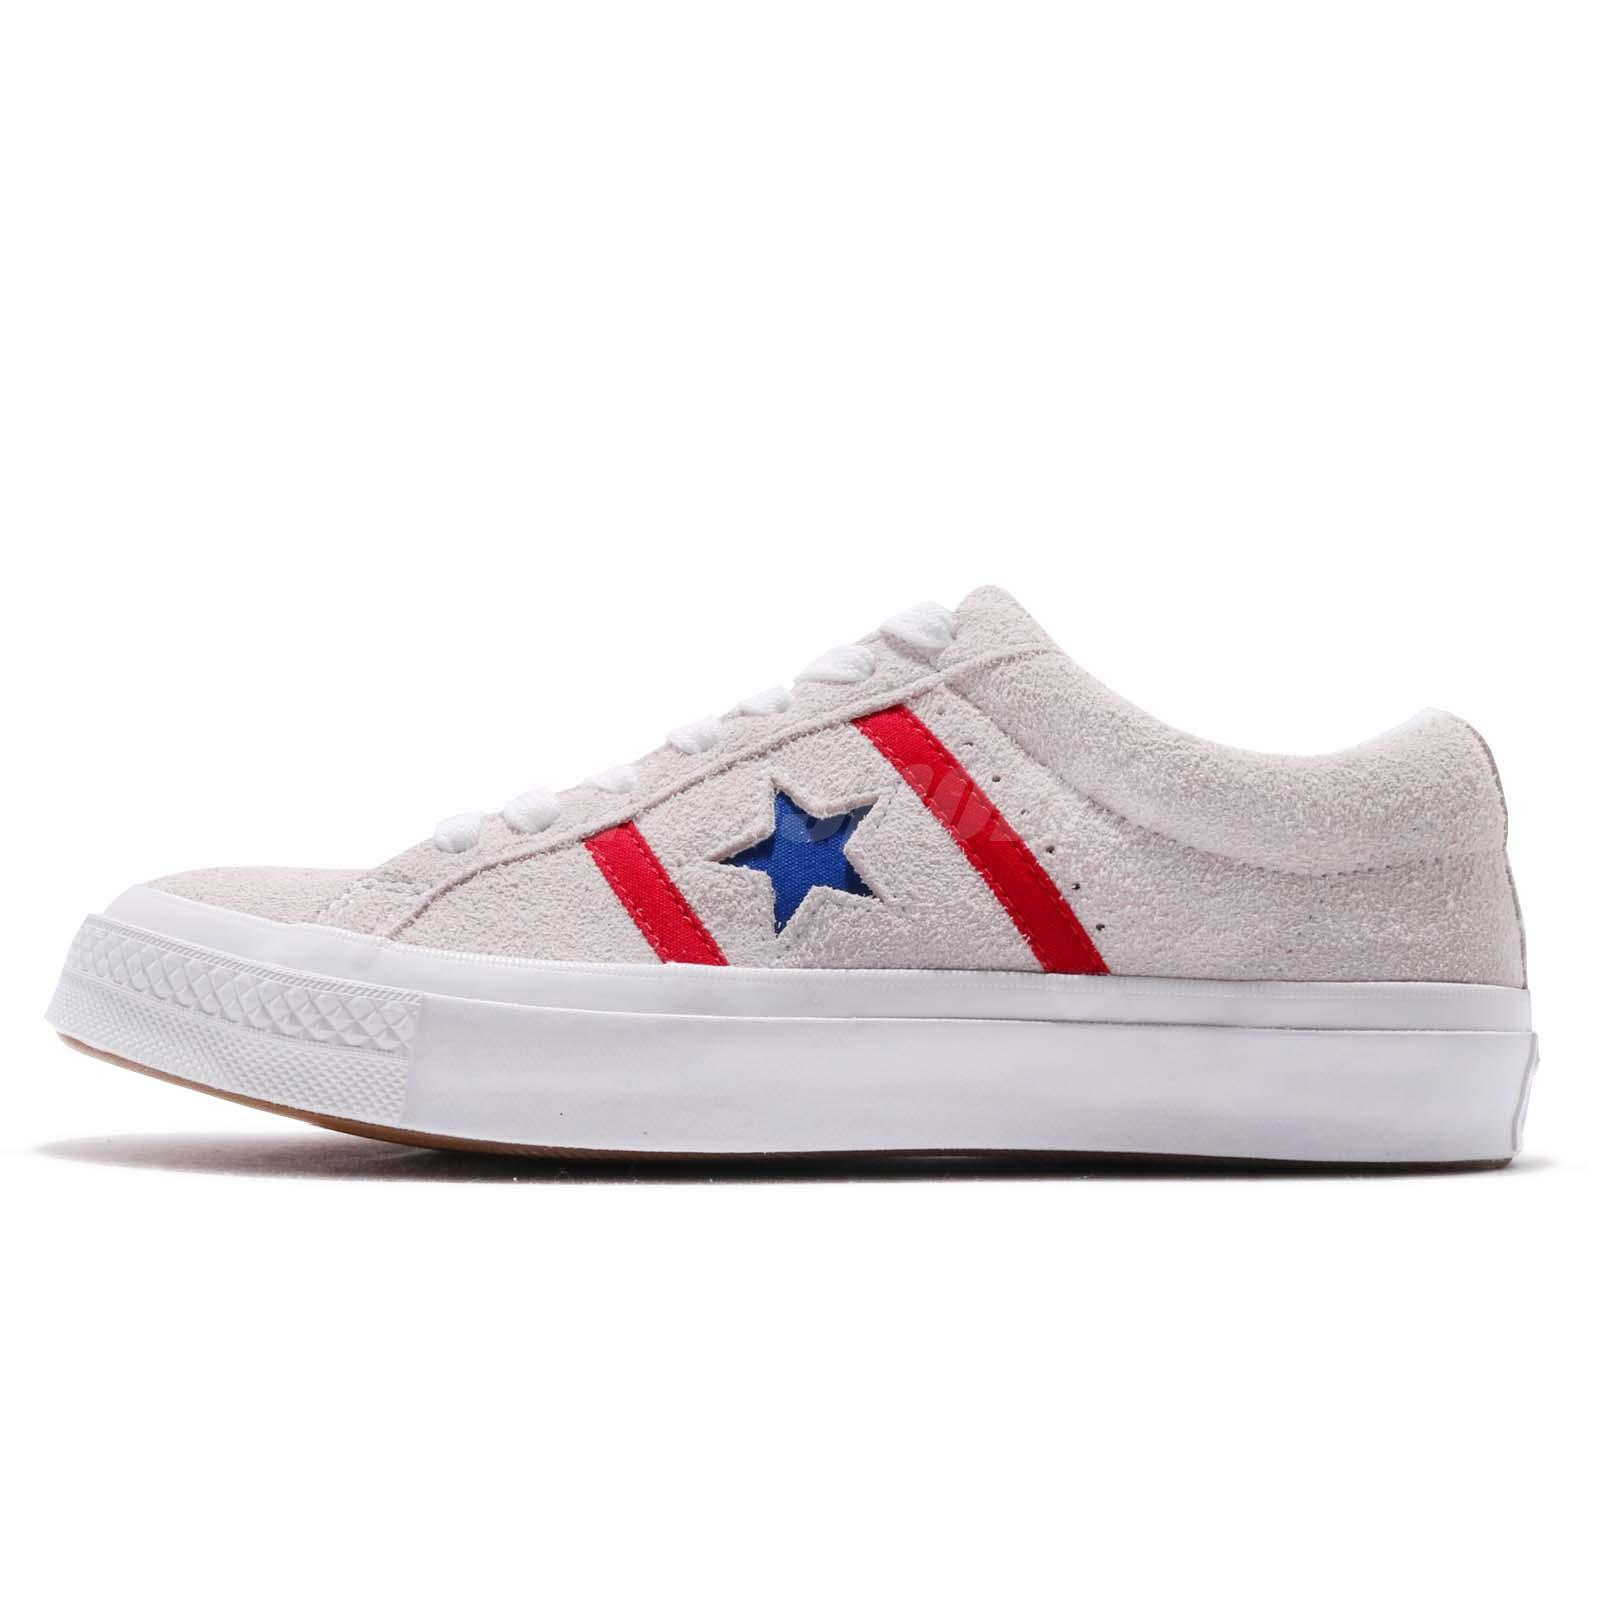 39bec36d62ace3 Converse One Star Academy OX Grey Red Blue Gum Suede Men Women Shoes 164390C